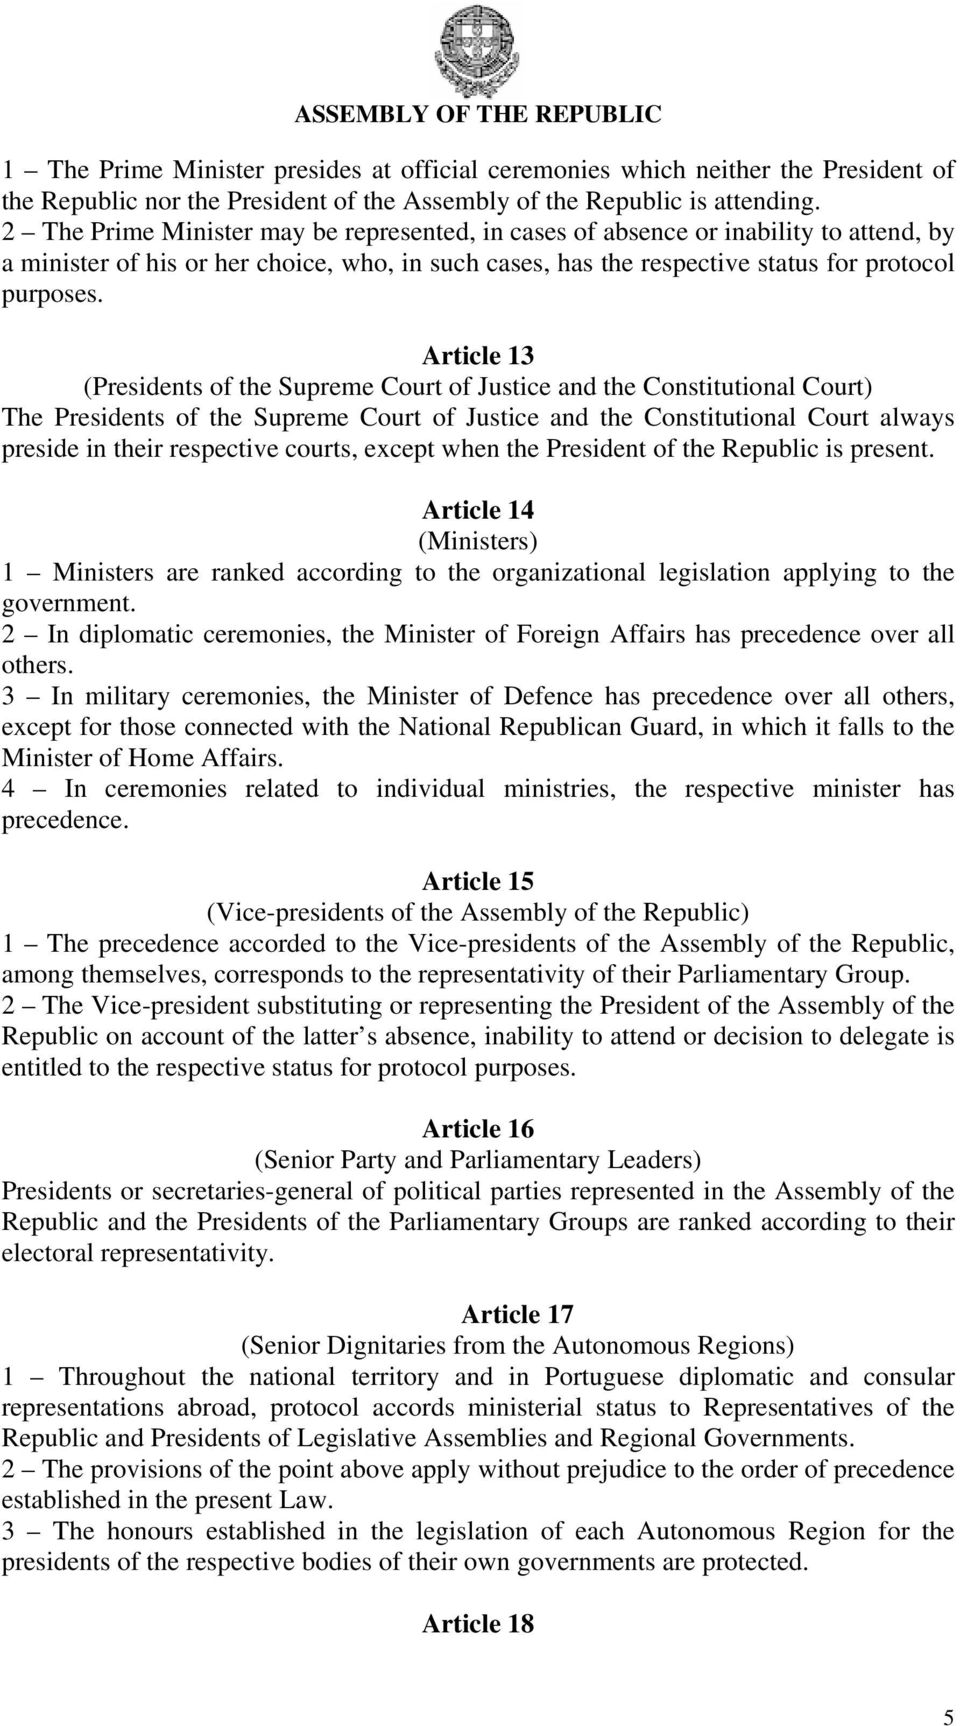 Article 13 (Presidents of the Supreme Court of Justice and the Constitutional Court) The Presidents of the Supreme Court of Justice and the Constitutional Court always preside in their respective